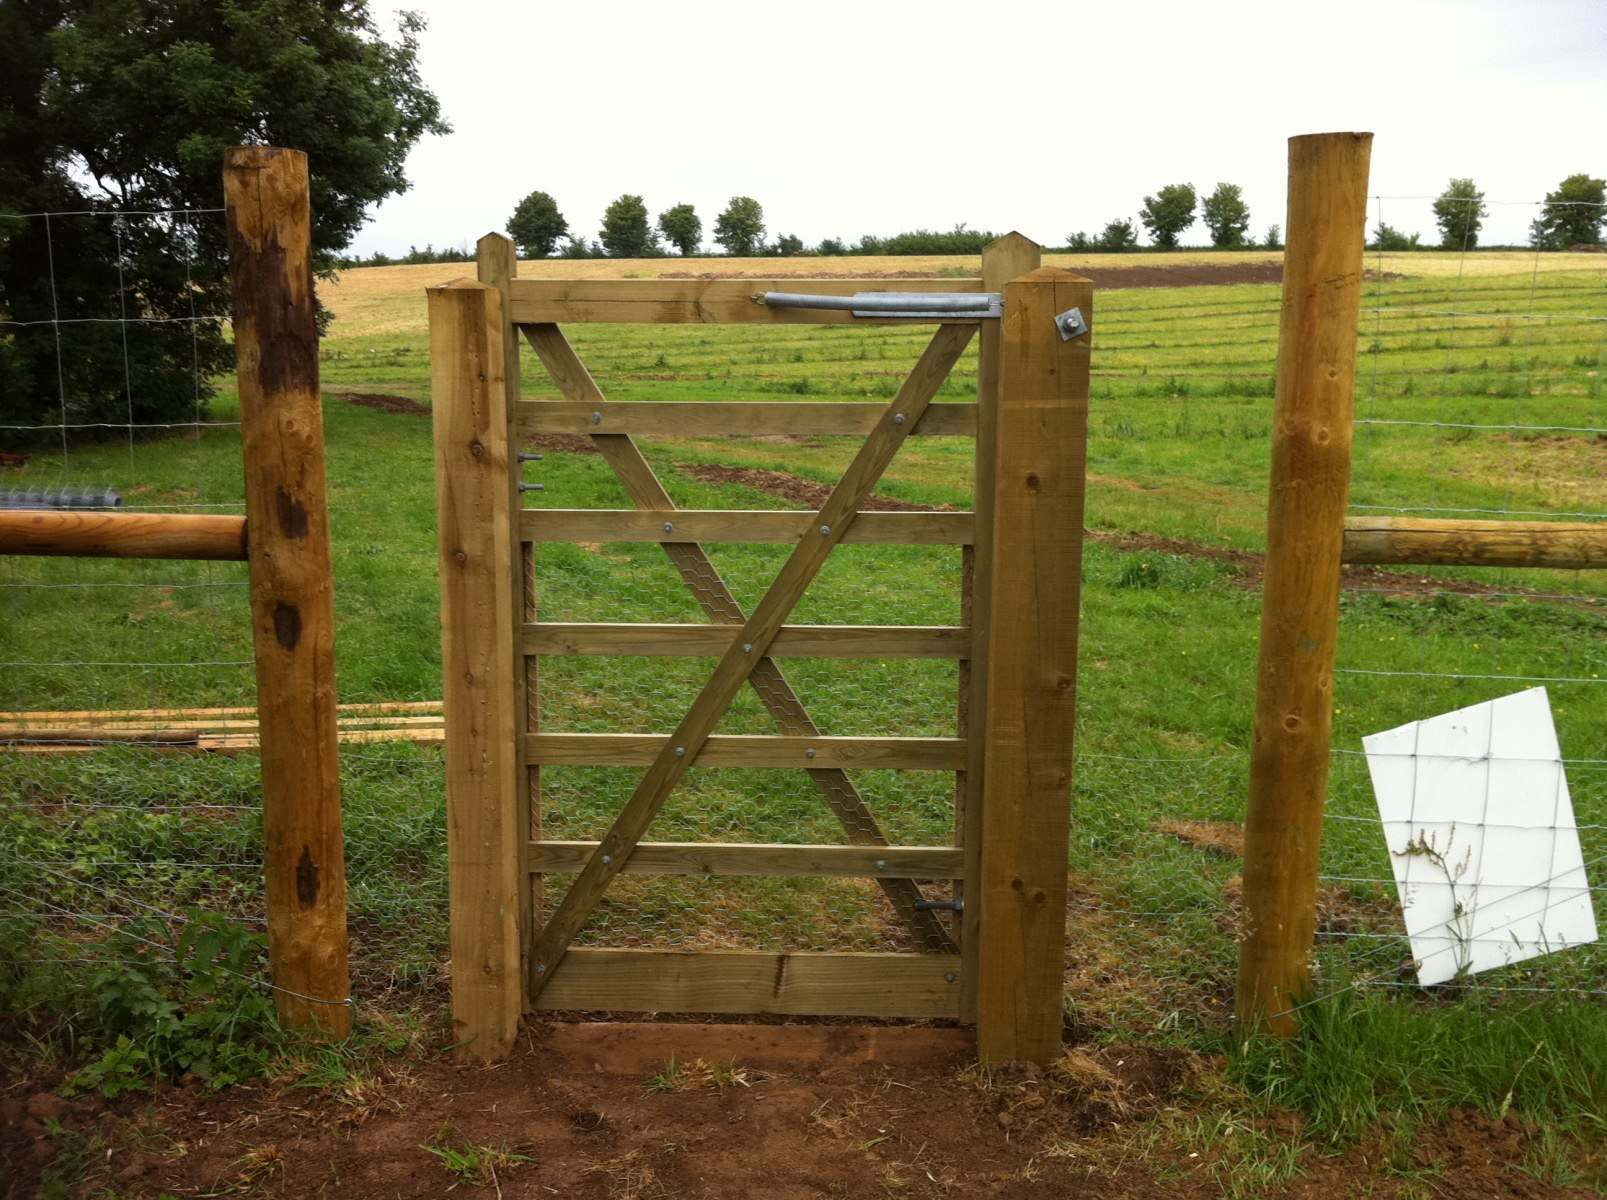 Timber_gate_in_deer_proof_fence_rabbit_netting_